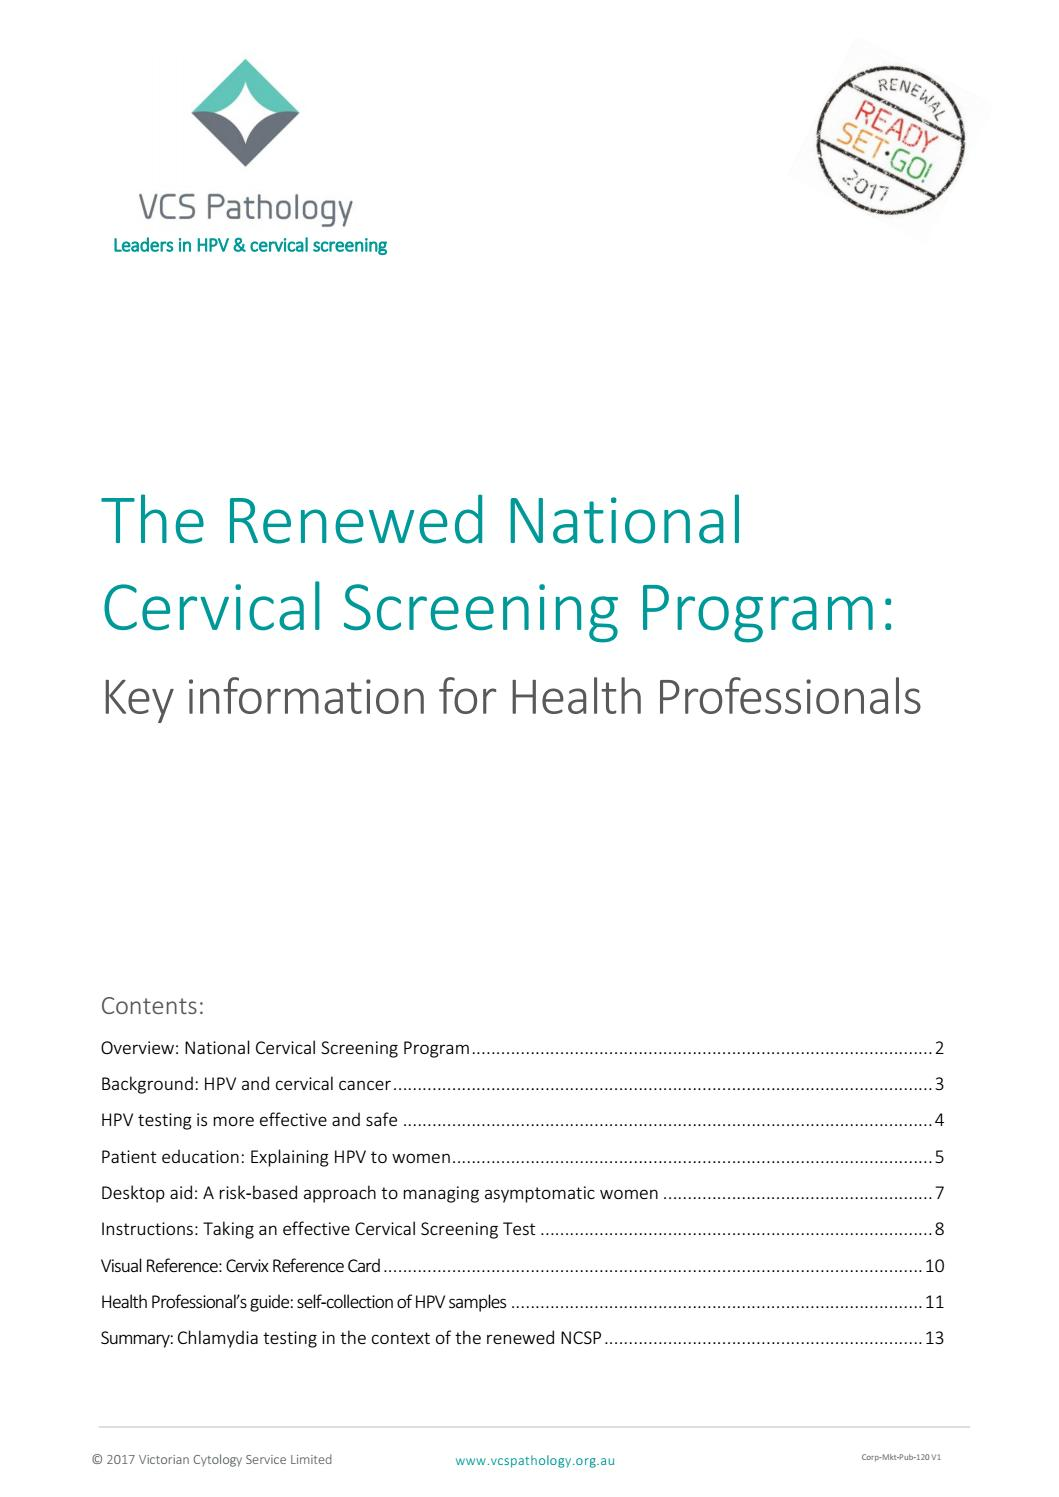 Renewal key information for health professional final 17120 by